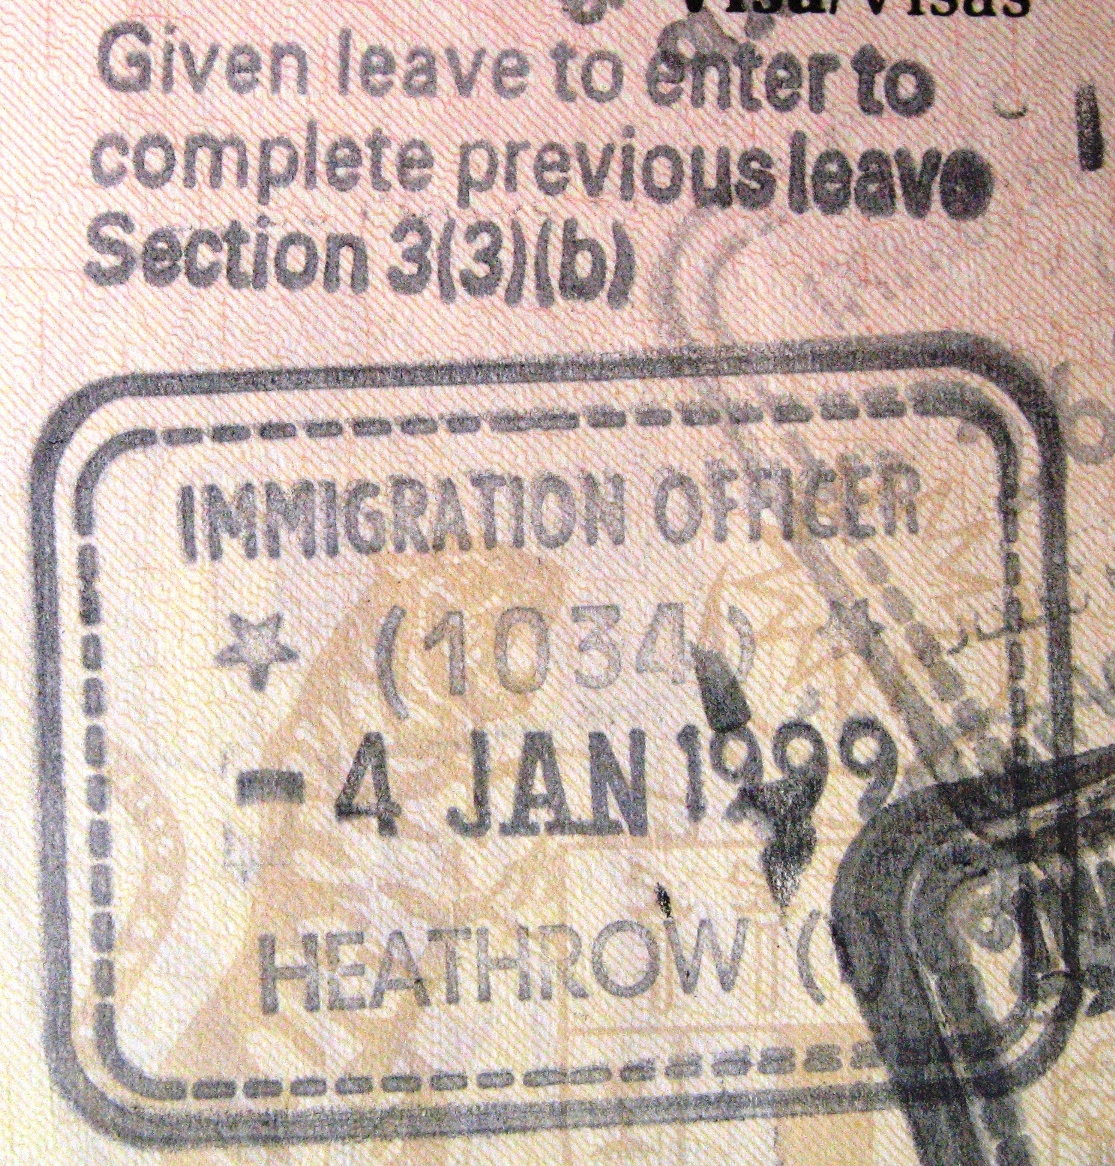 A UK entry visa stamp